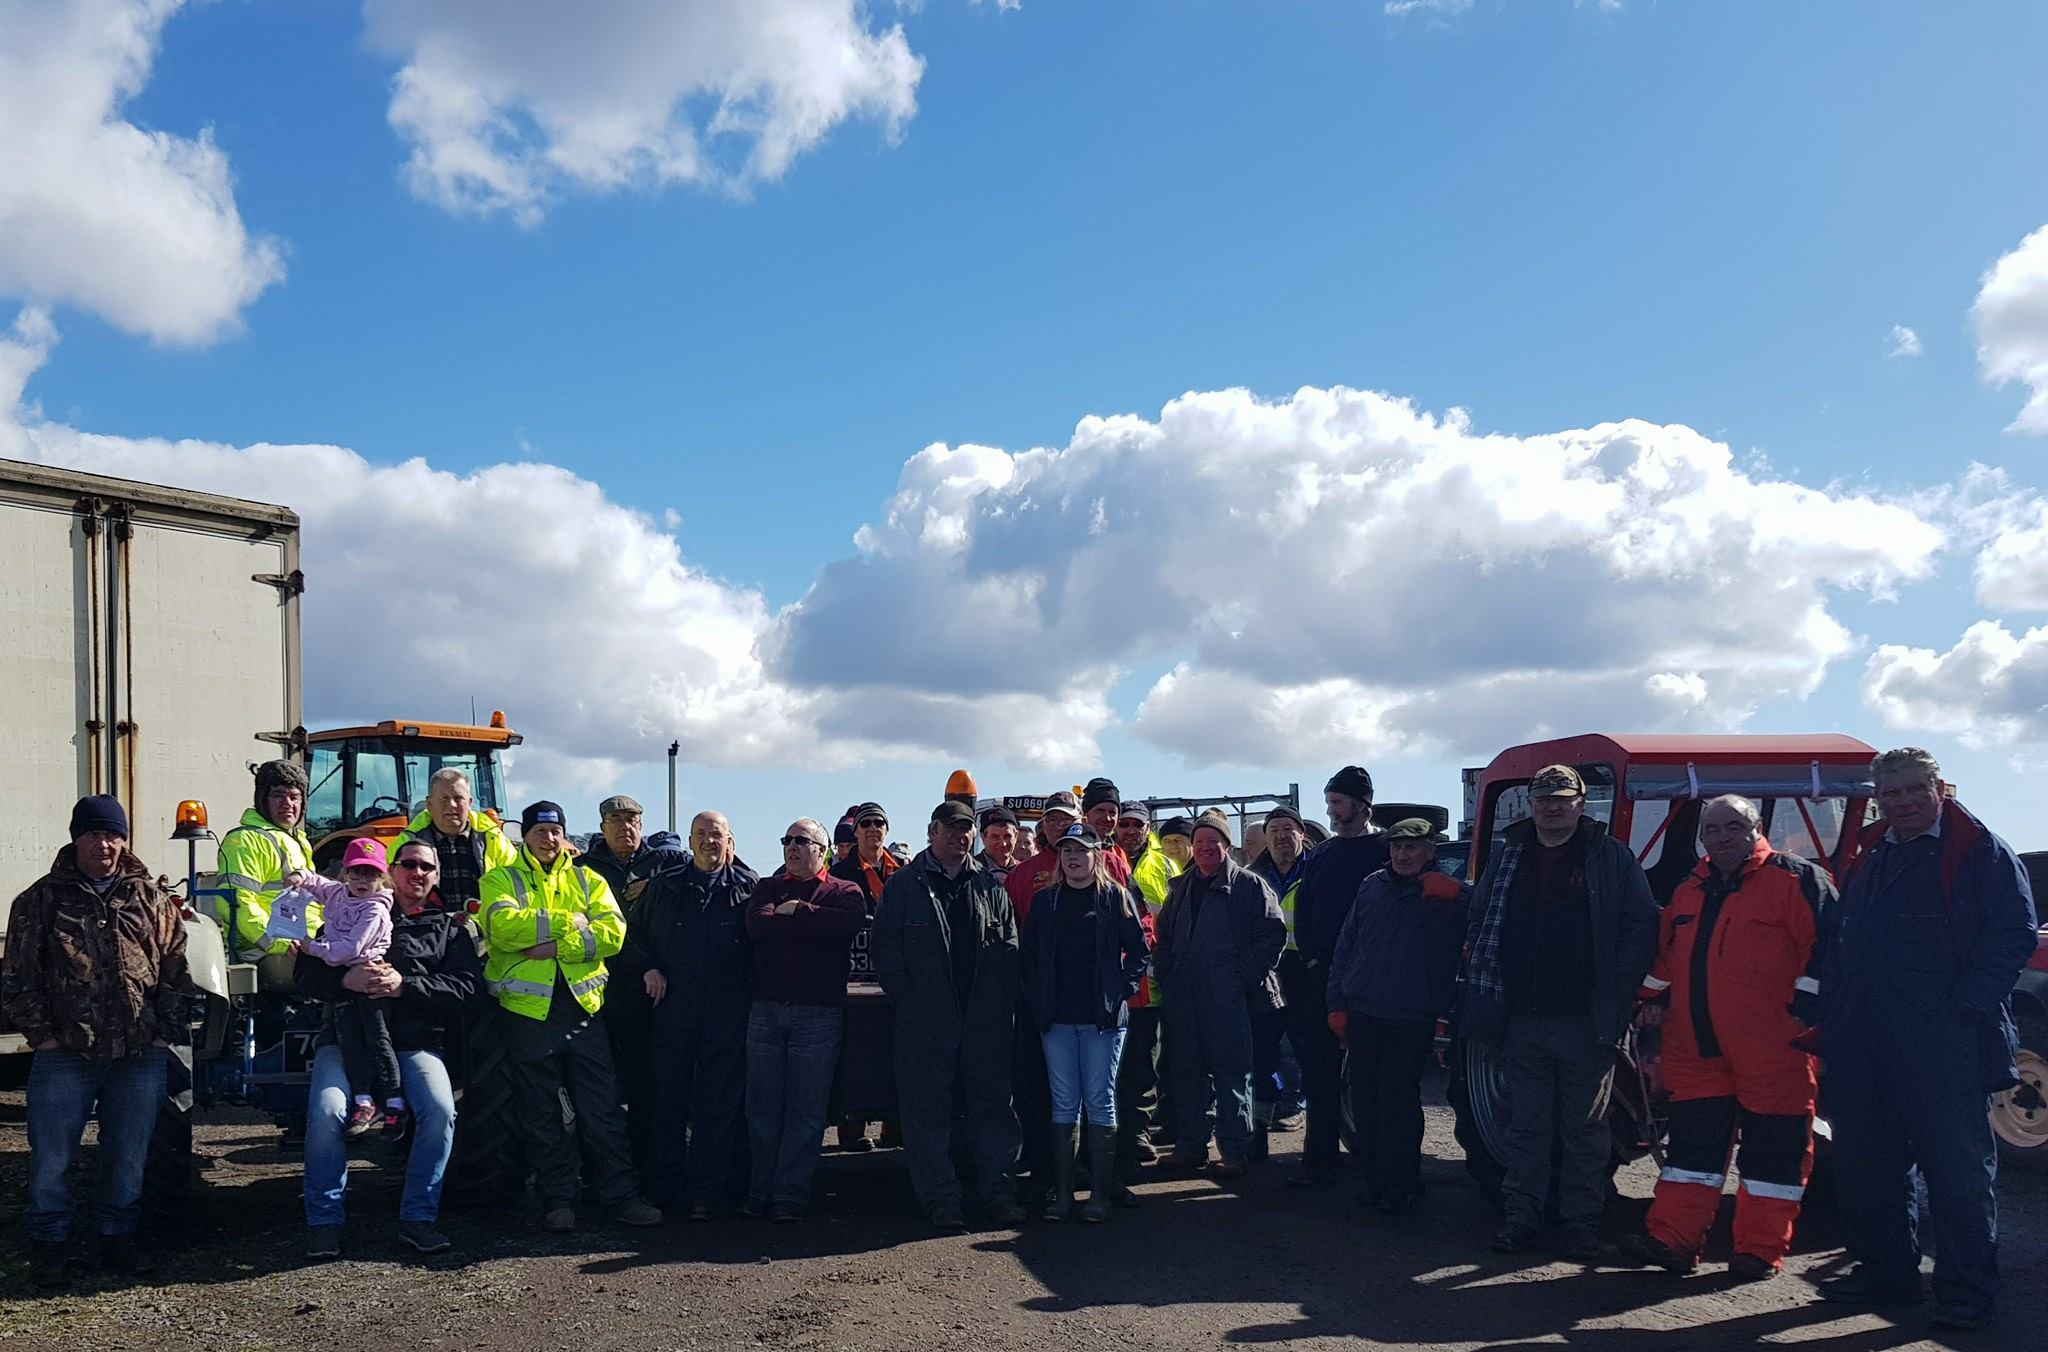 Participants take a break during the tractor run.